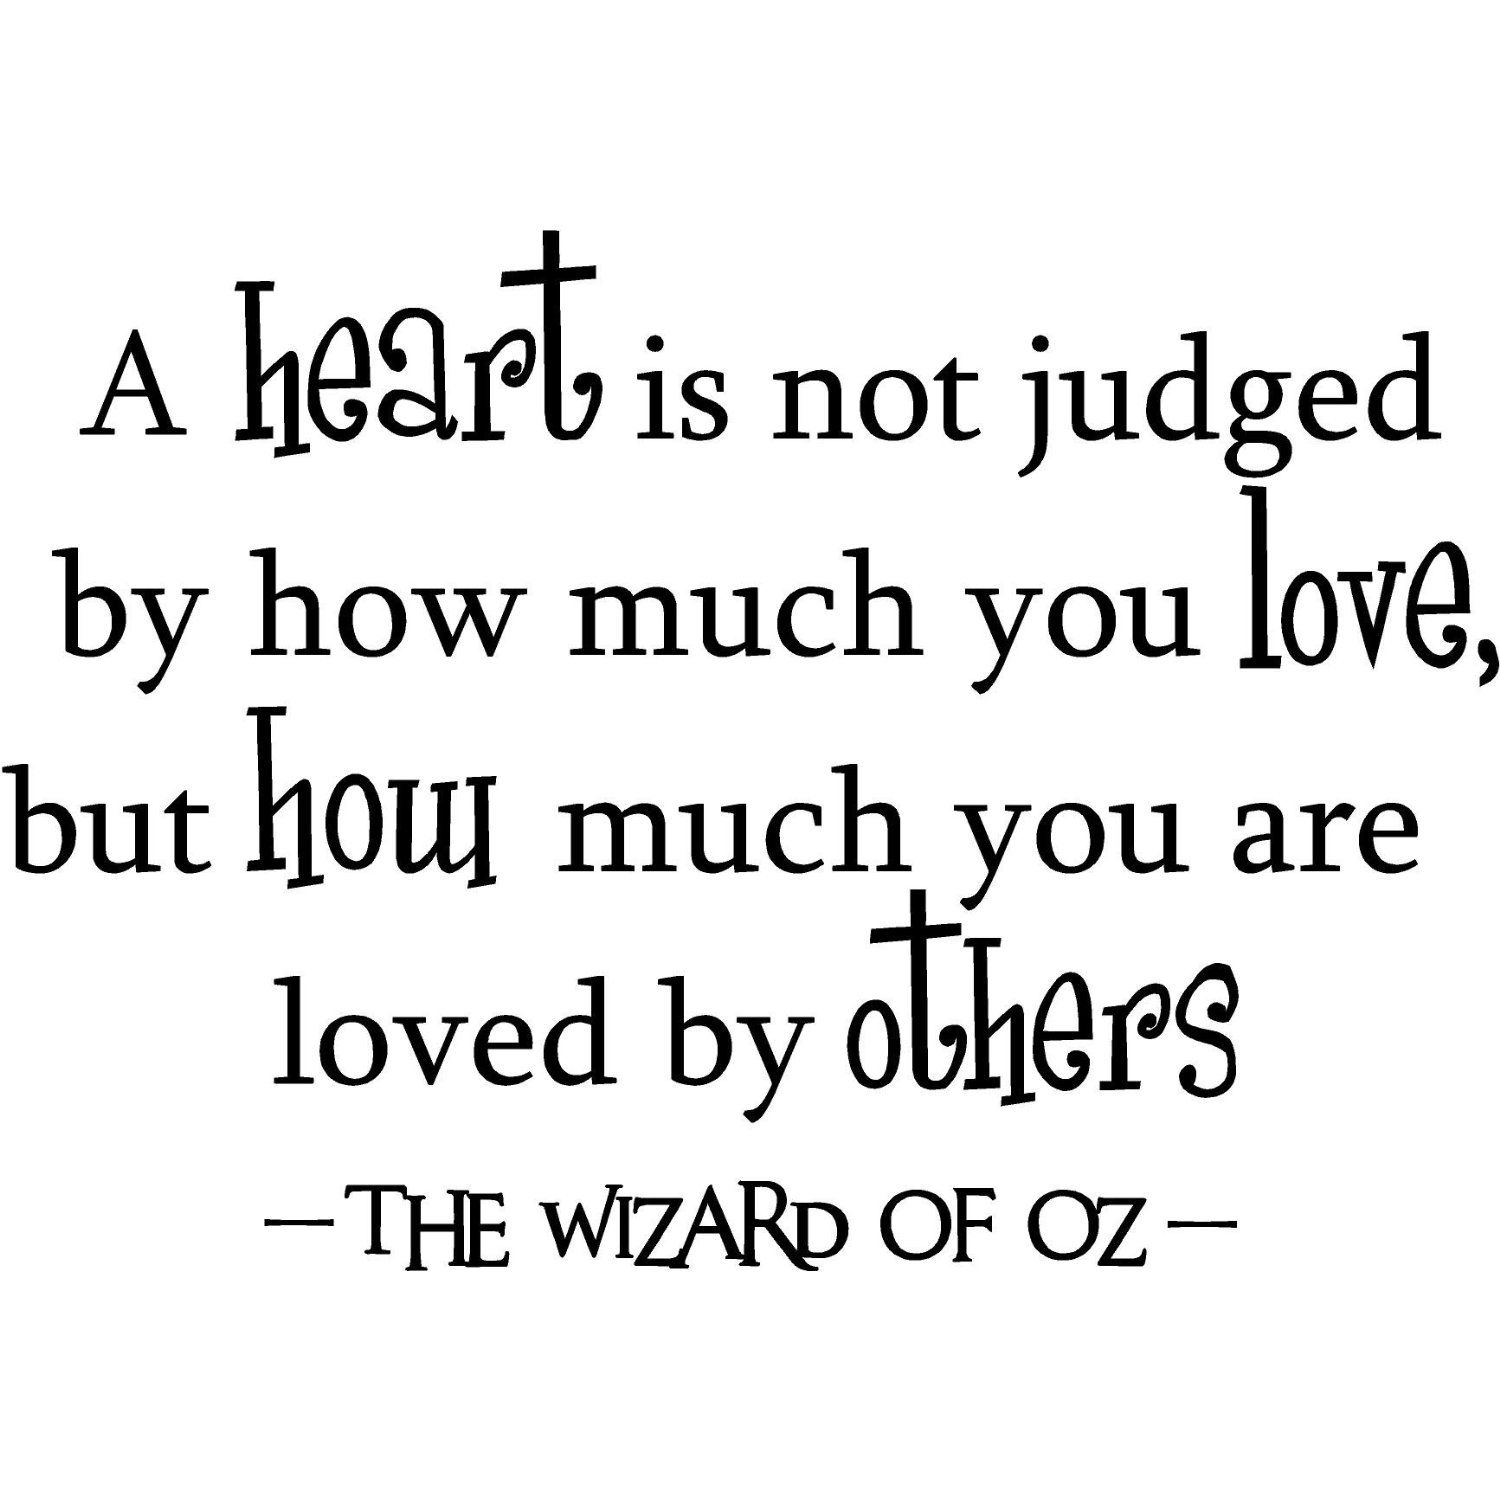 Wizard Of Oz Love Quotes Wizard Of Oz Quotes  Google Search  Wizard Of Oz  Pinterest